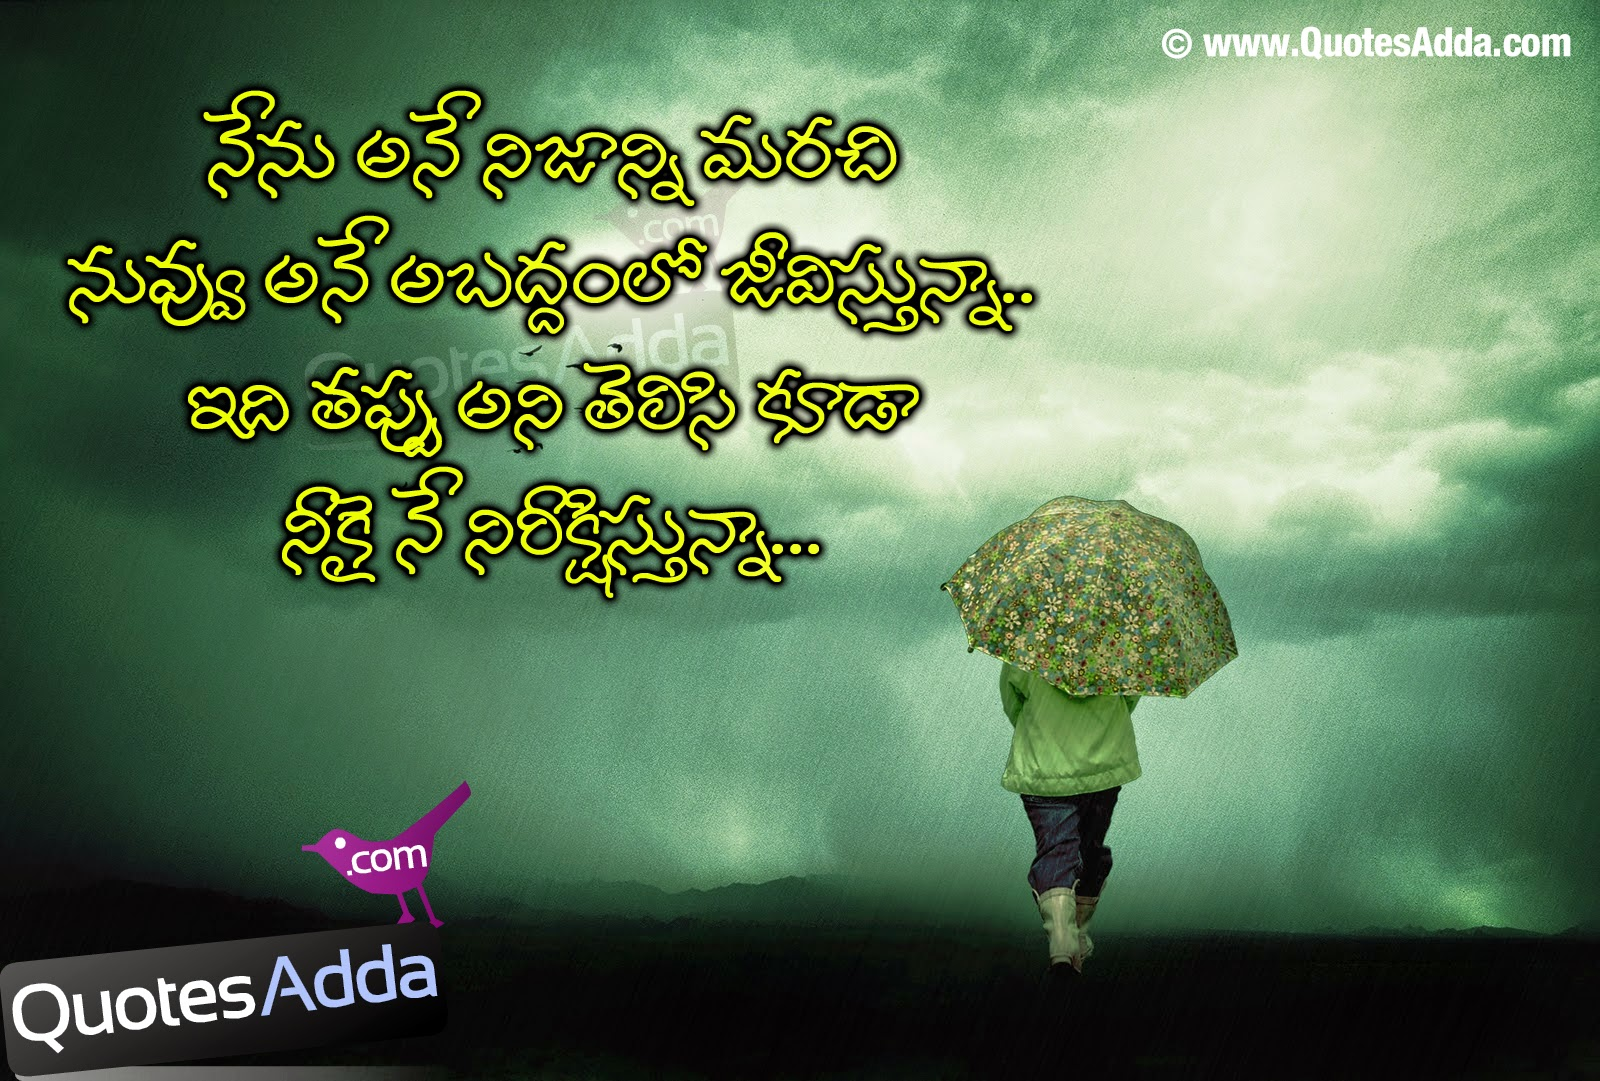 alone-love-free-telugu-quotations-telugu-love-images-for-whatsapp